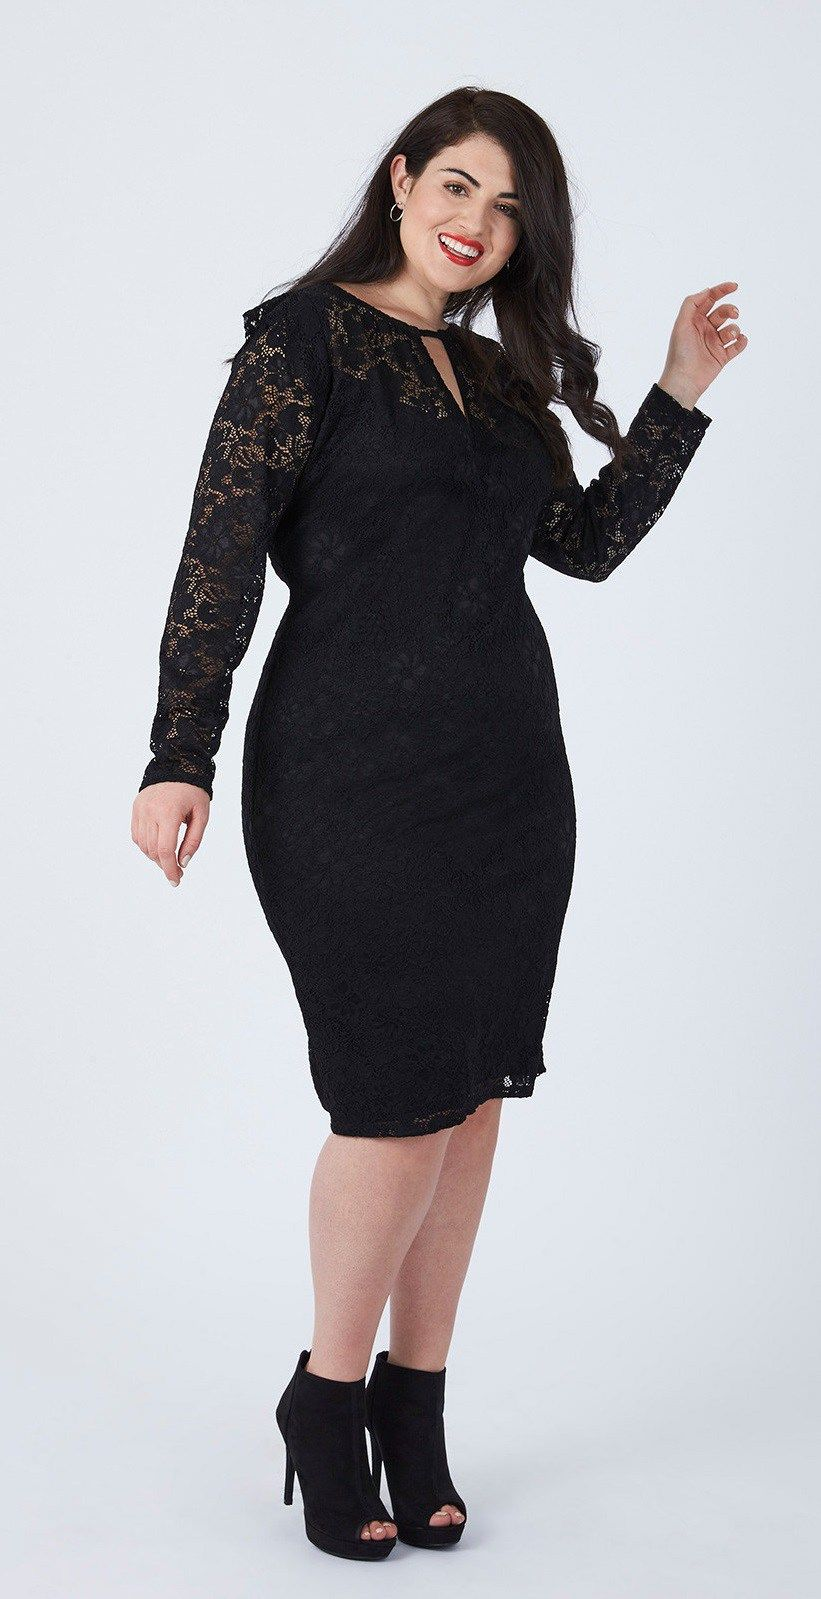 47a783cd36a Plus Size LBD Outfits - Plus Size Little Black Dress - Plus Size Holiday  Dress  plussize  alexawebb  dress  holiday